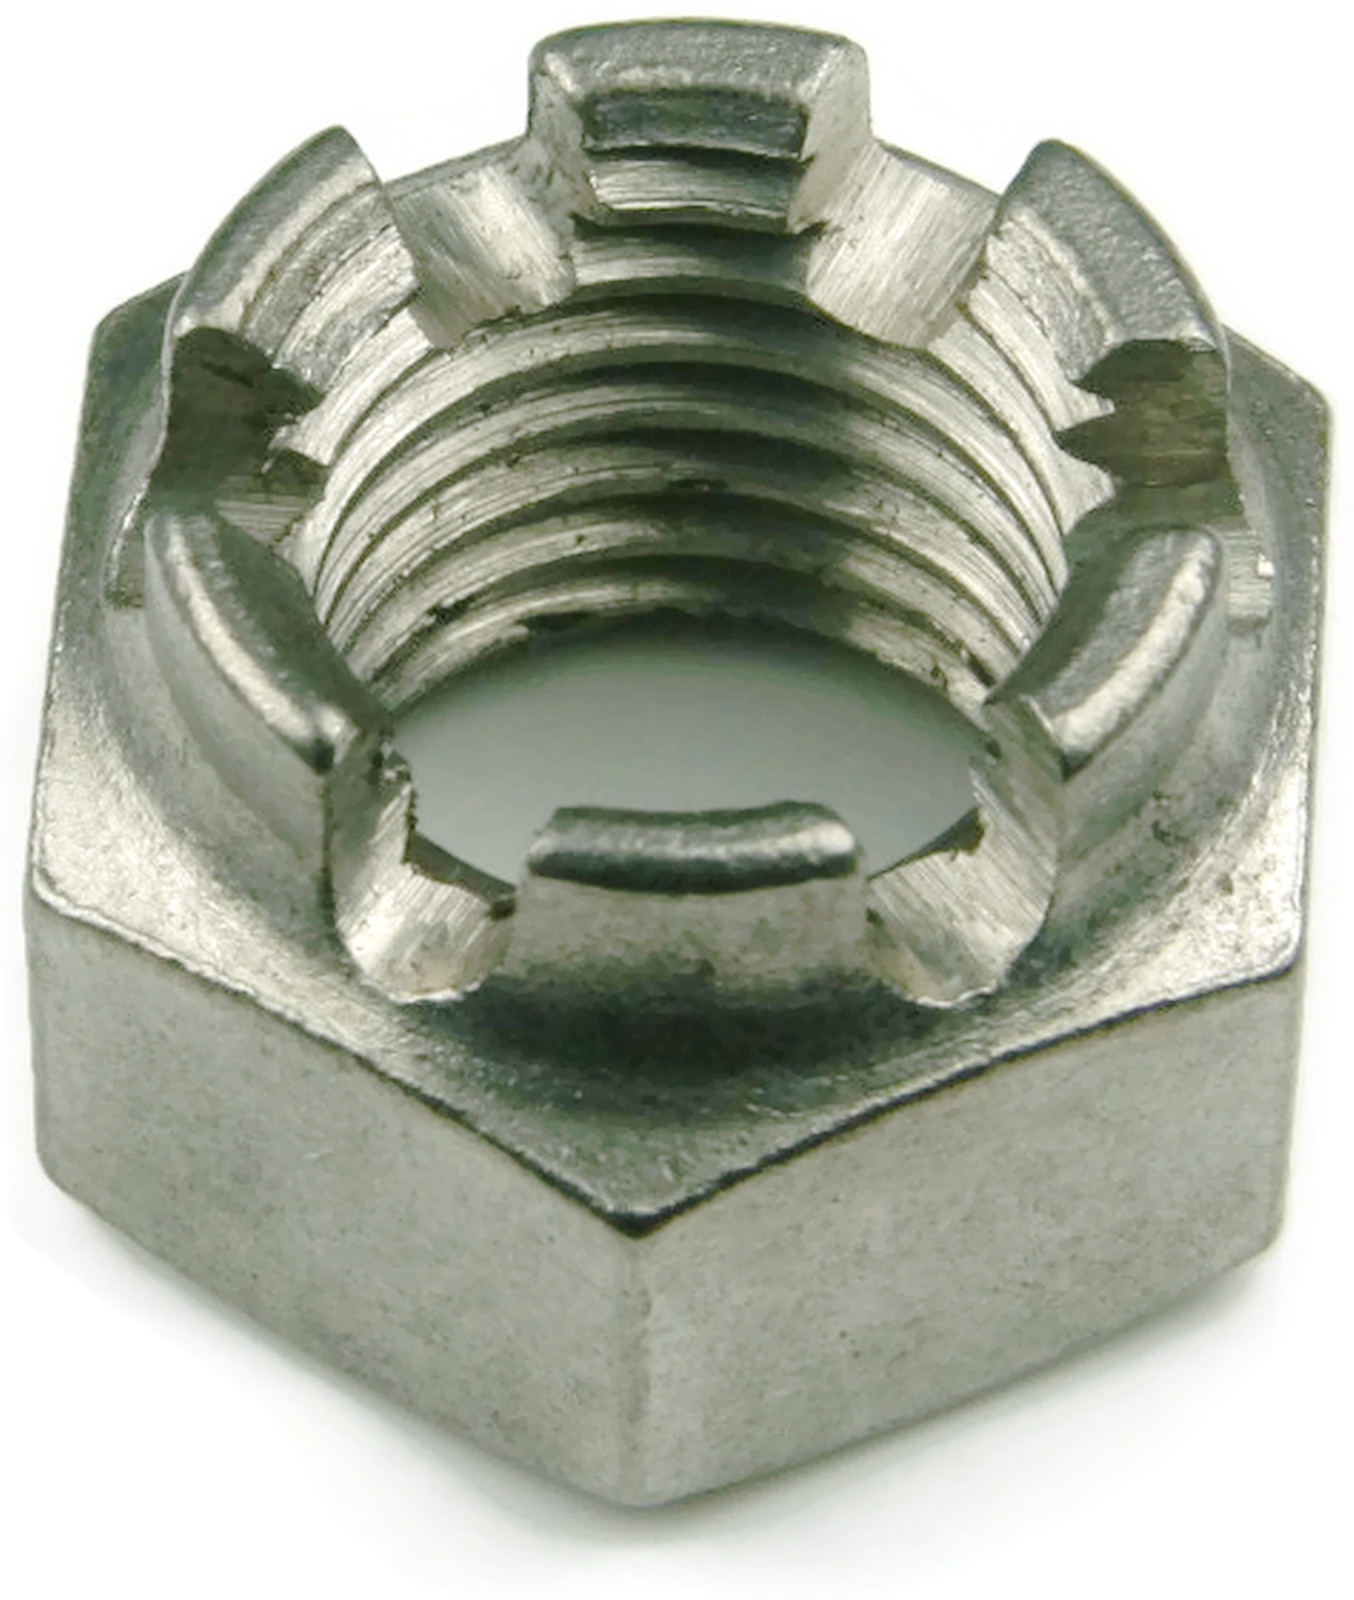 Stainless Steel Cotter Pin Castle Nut 3//8-24 UNF Qty 1